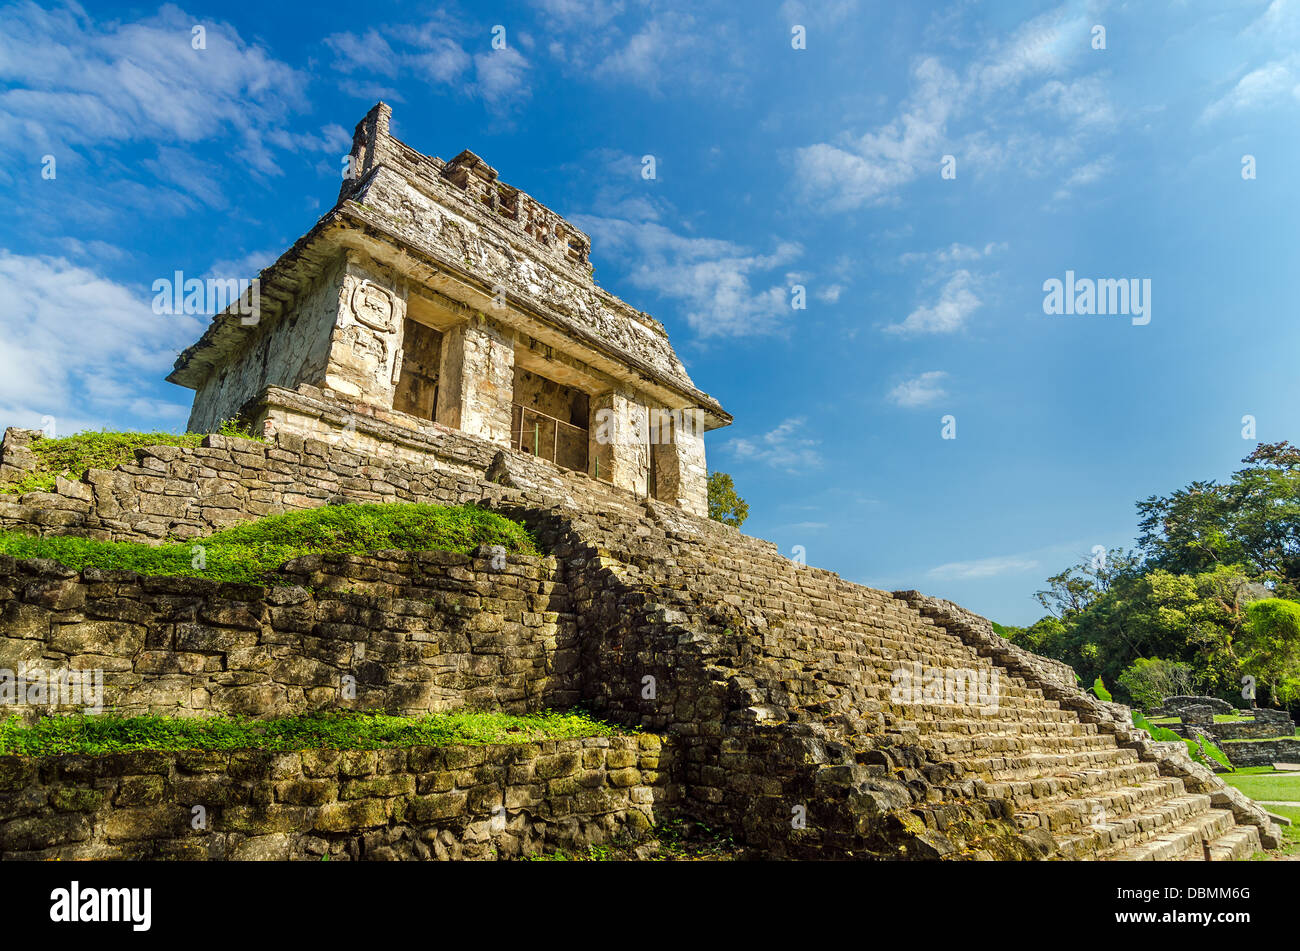 Temple in ancient Mayan city of Palenque with a beautiful blue sky - Stock Image